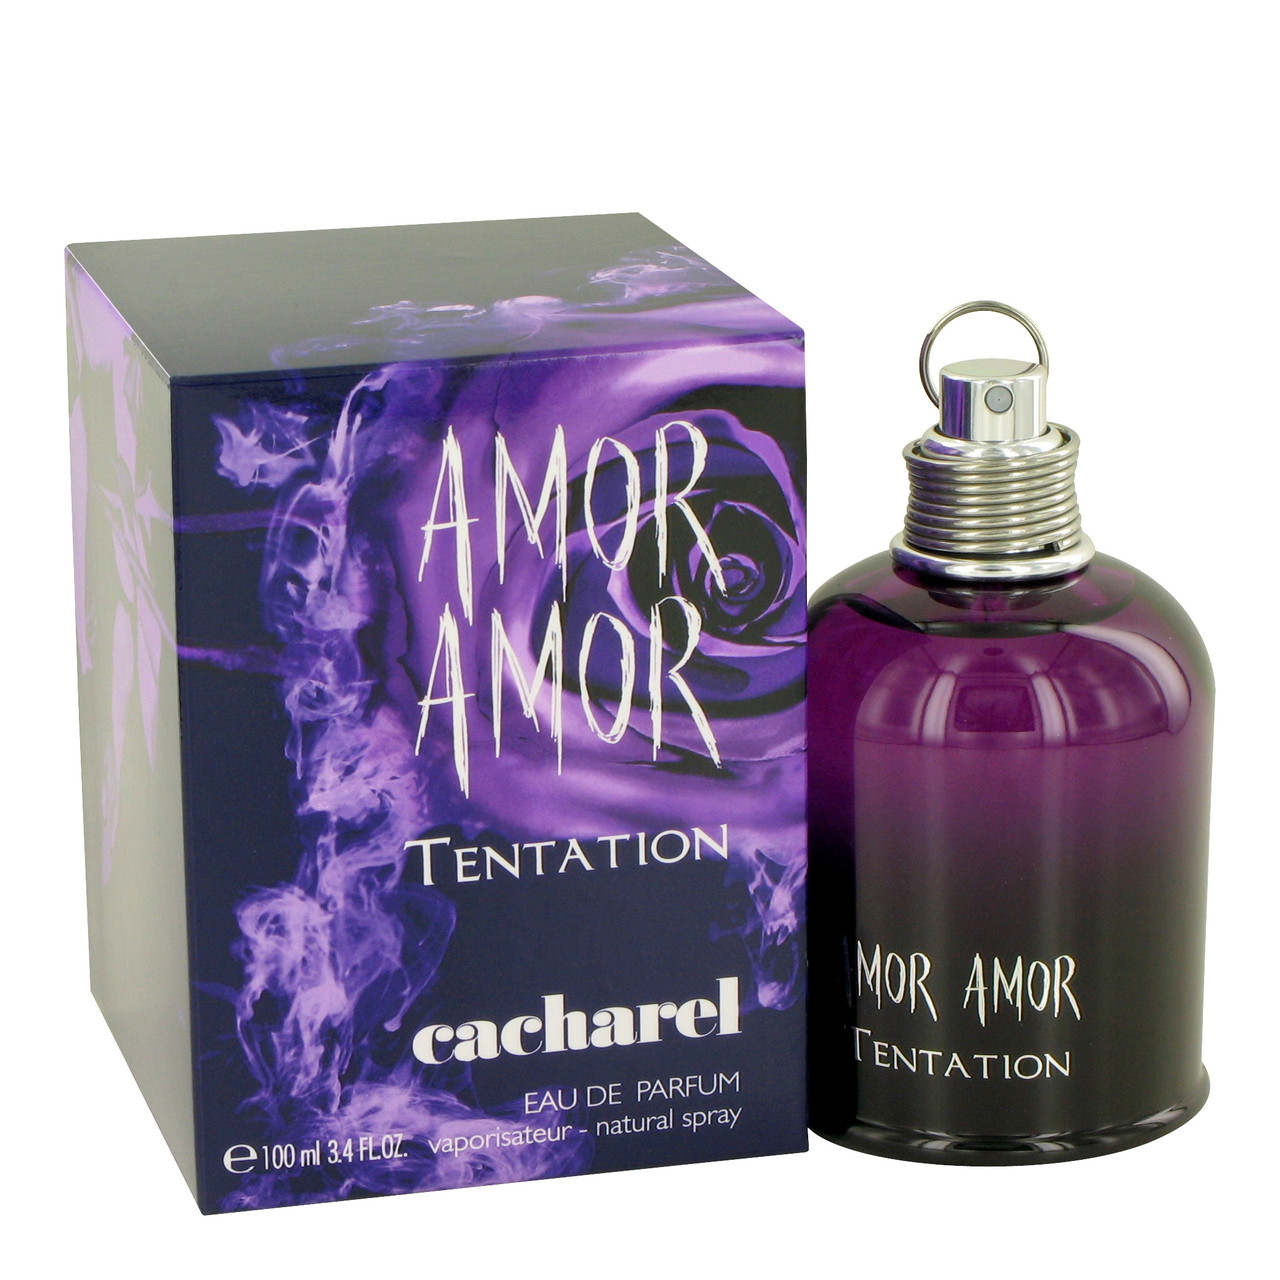 Amor Amor Tentation By Cacharel 34 Oz Eau De Parfum Perfumebff